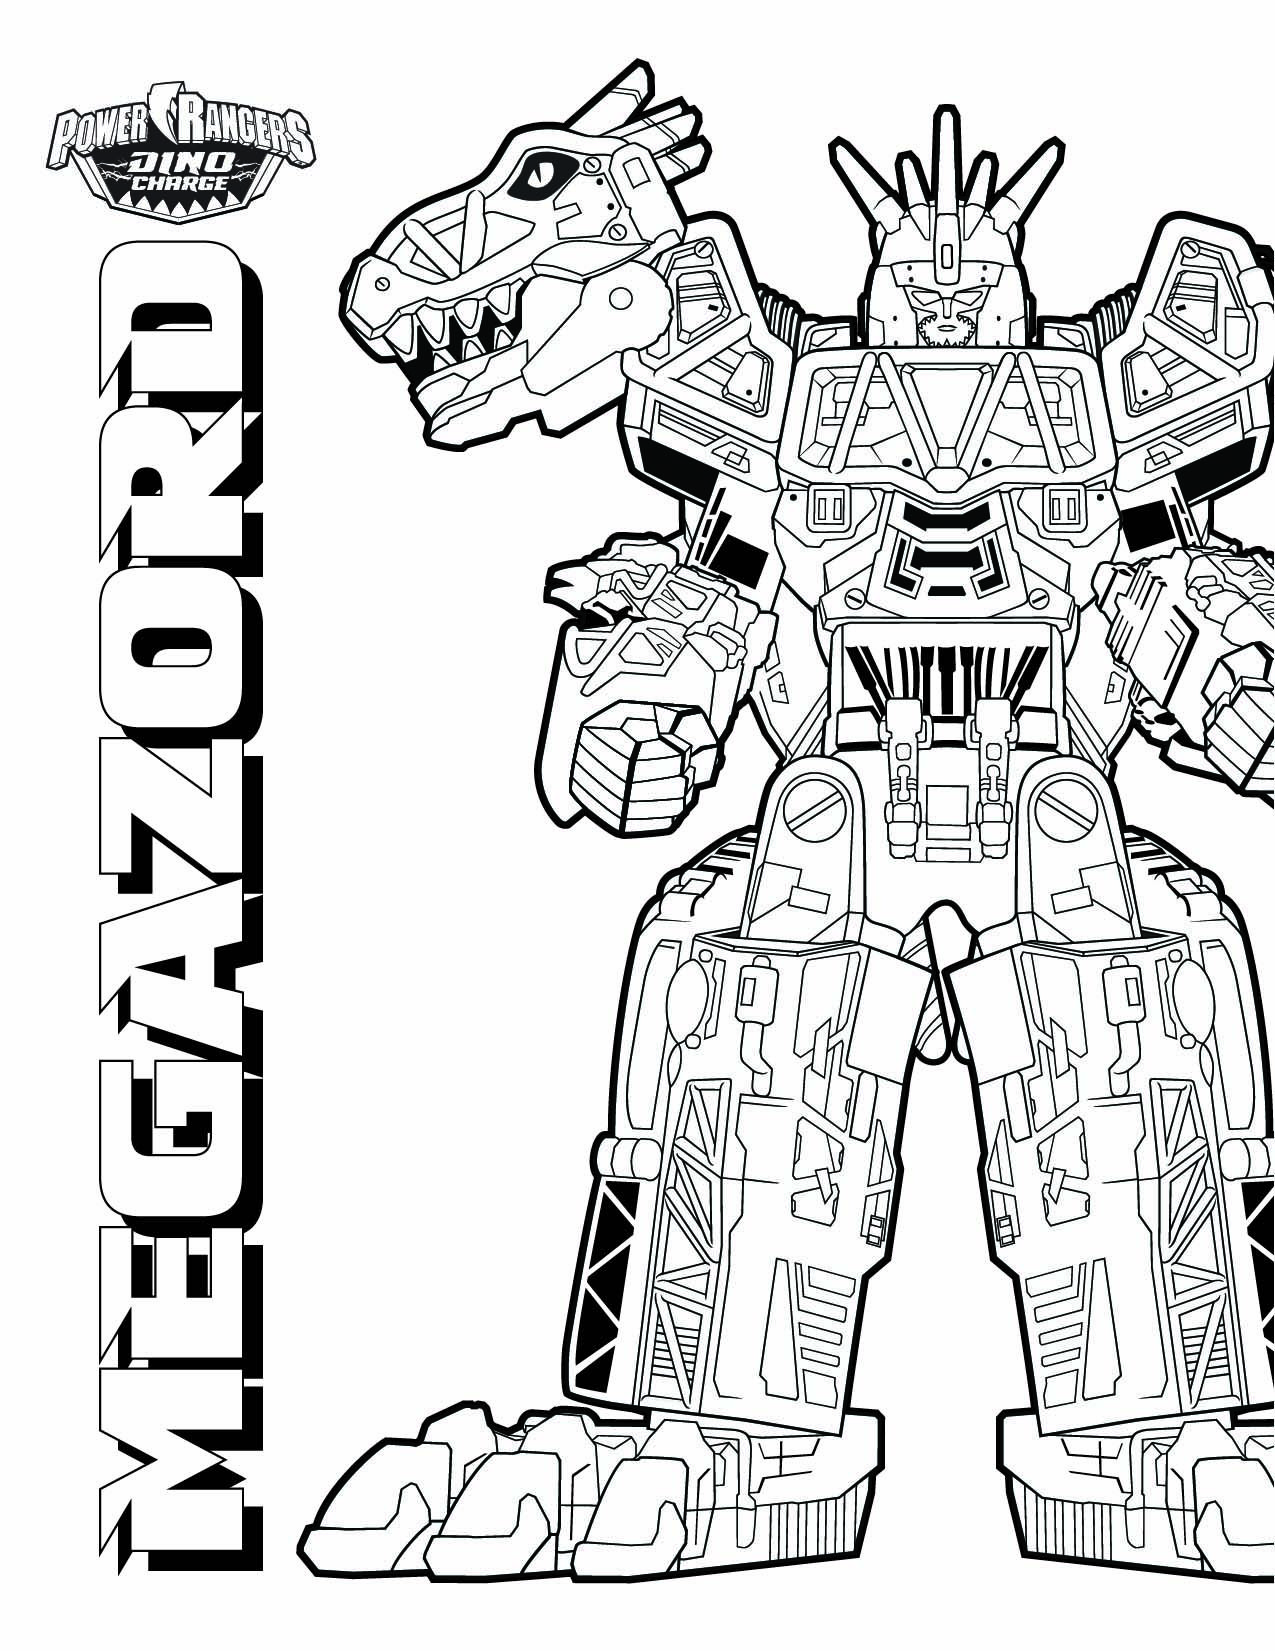 Ausmalbilder Jungs Dinosaurier : Megazord Download Them All Http Www Powerrangers Com Download